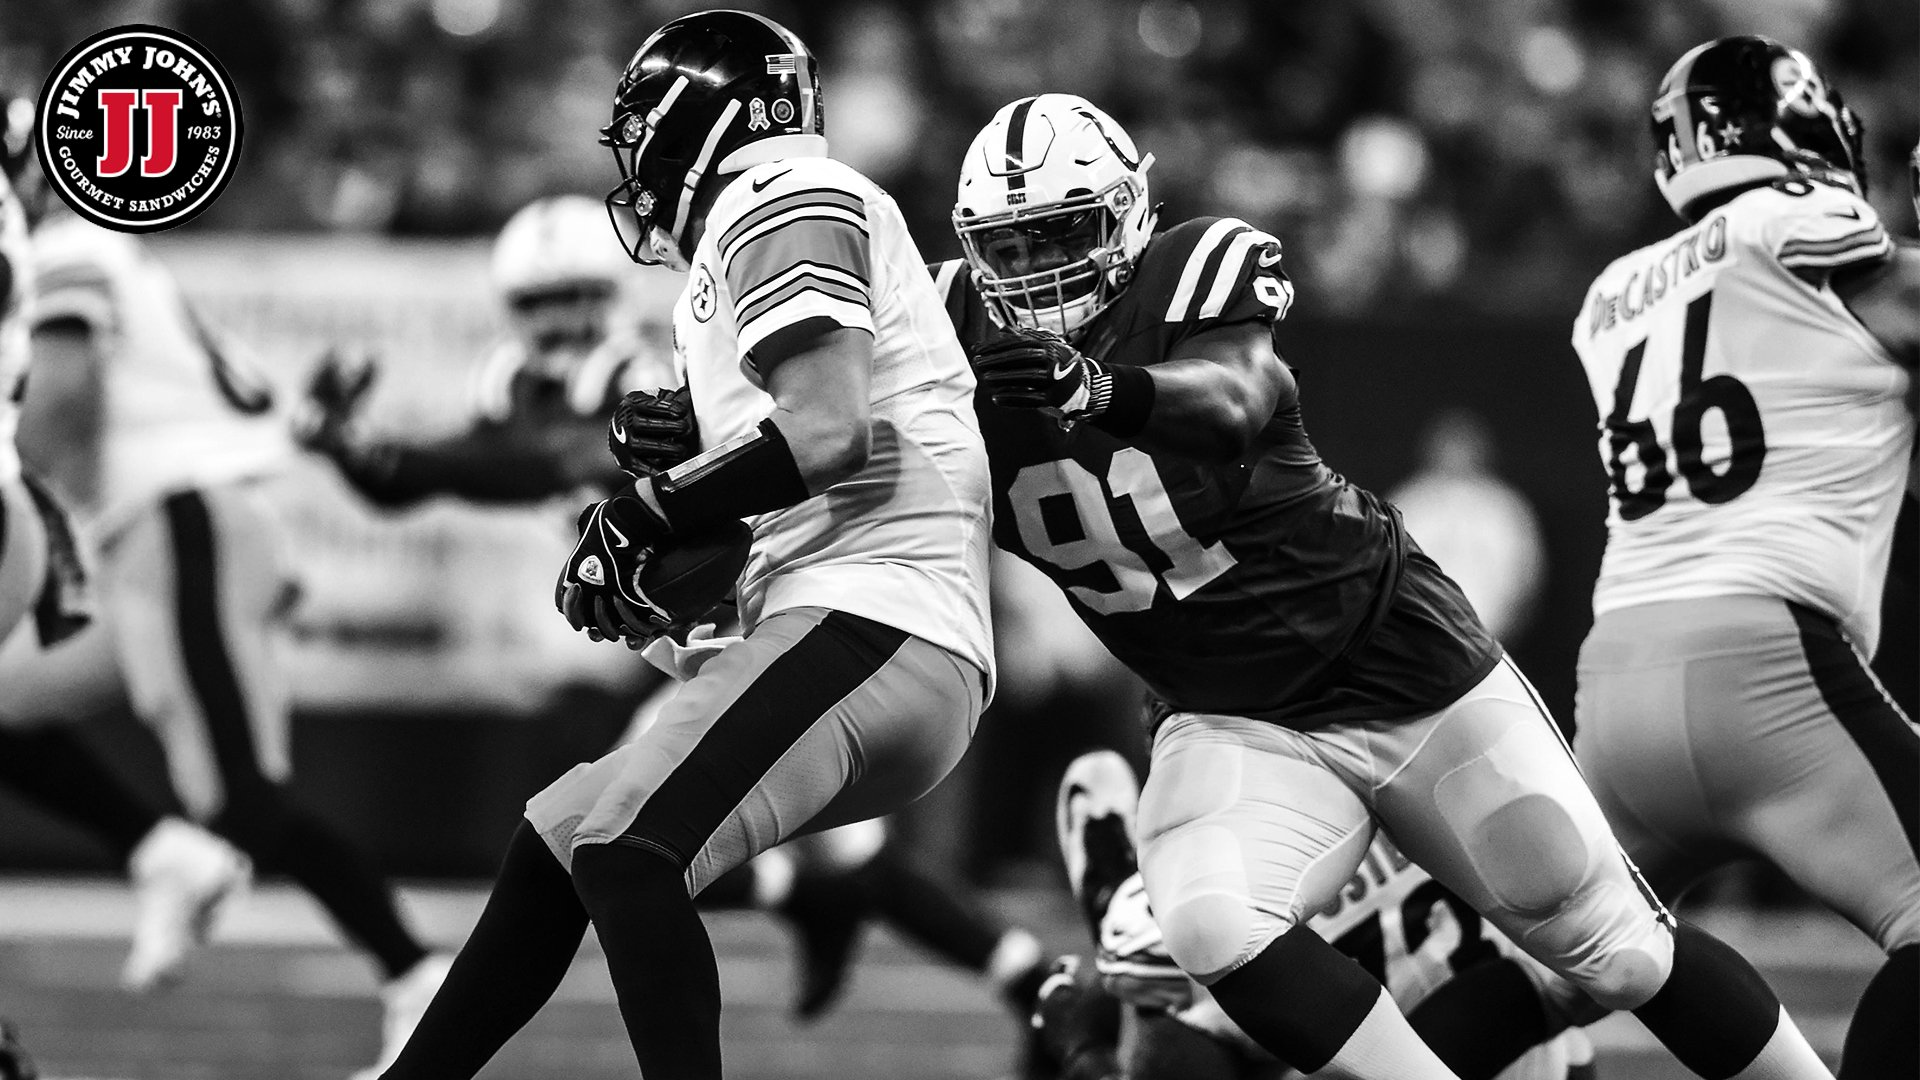 Top 10 photos from #PITvsIND: https://t.co/m8zvPmeAYA https://t.co/DxaPpAv0mh